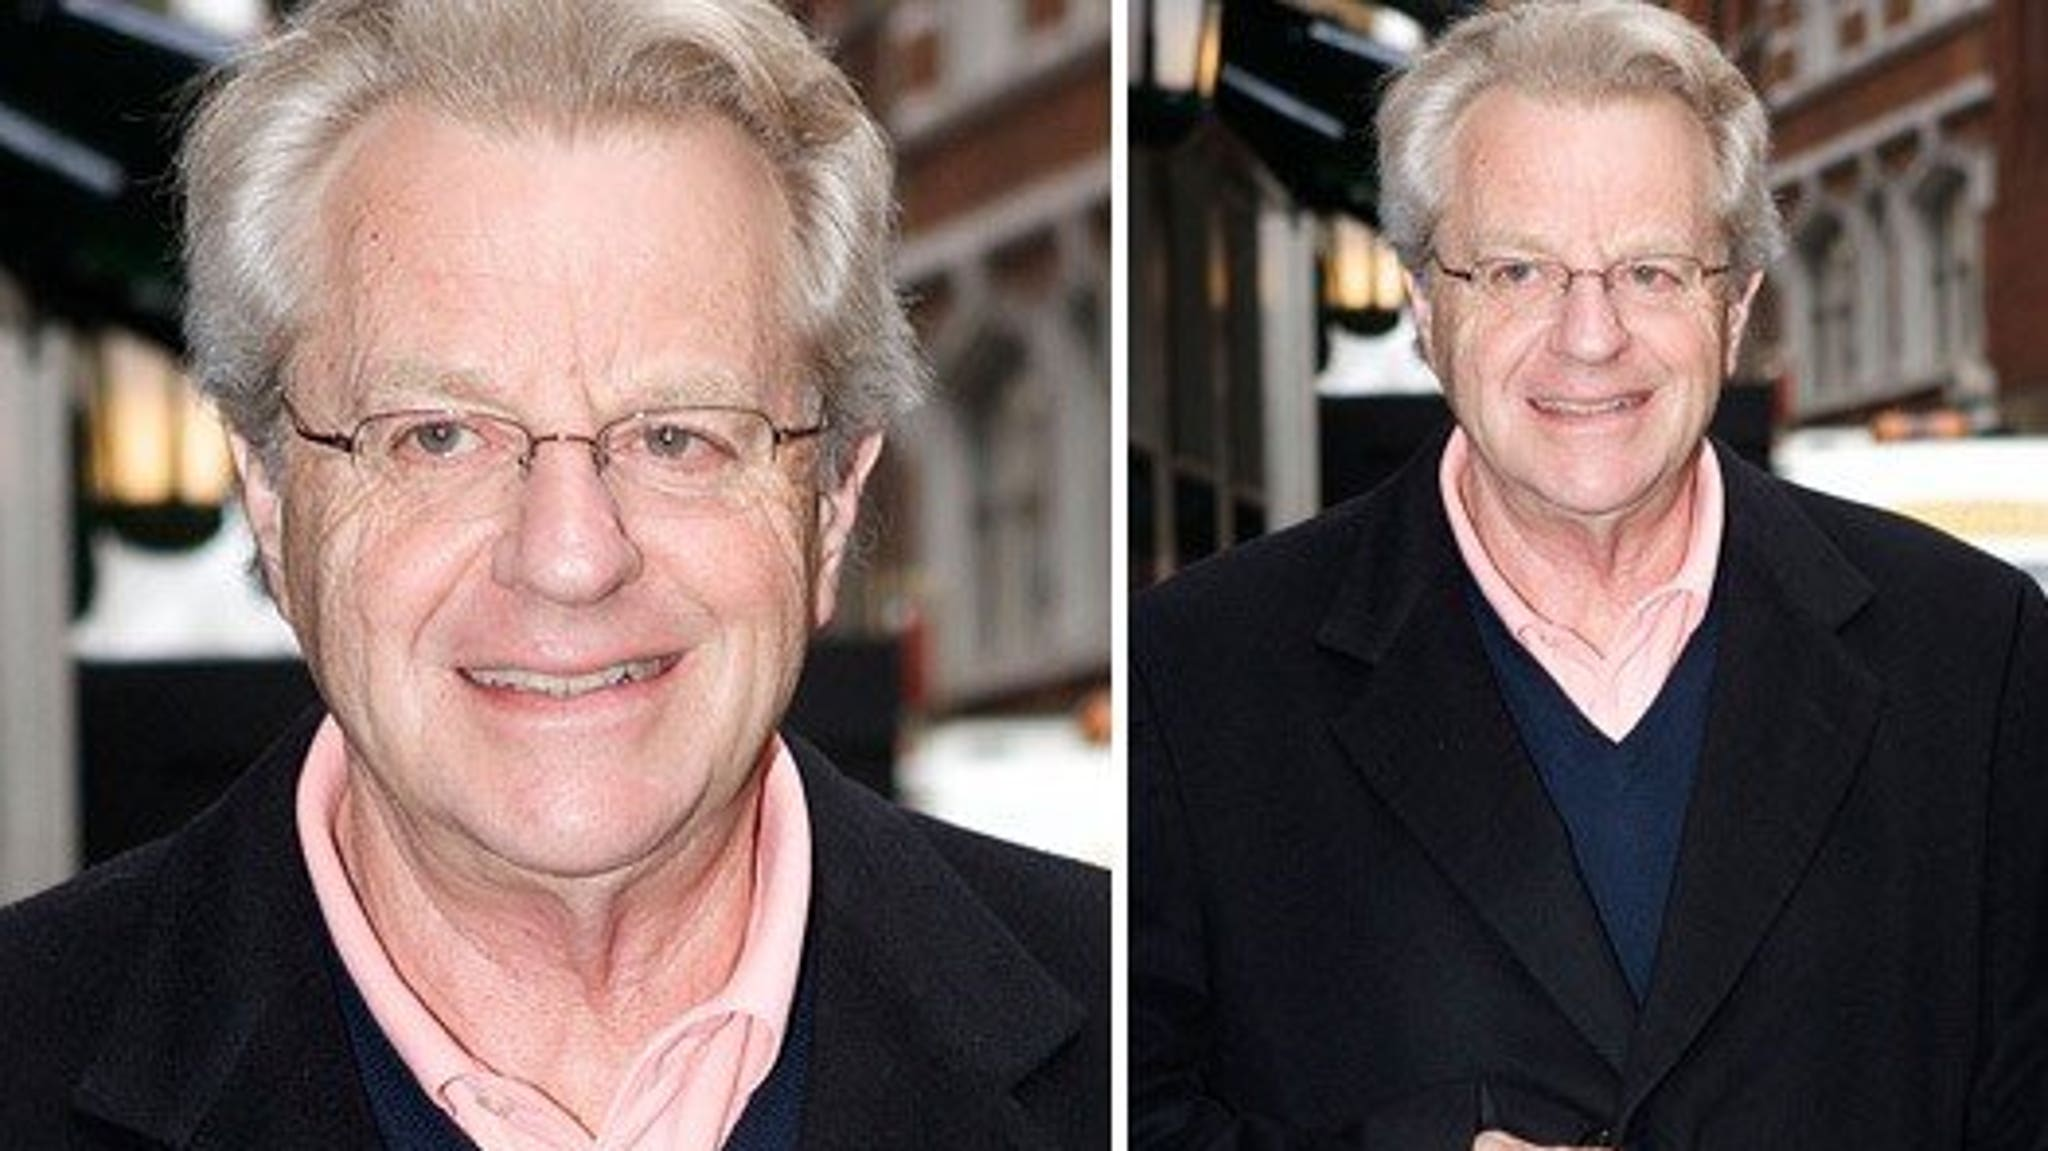 Jerry springer new dating show